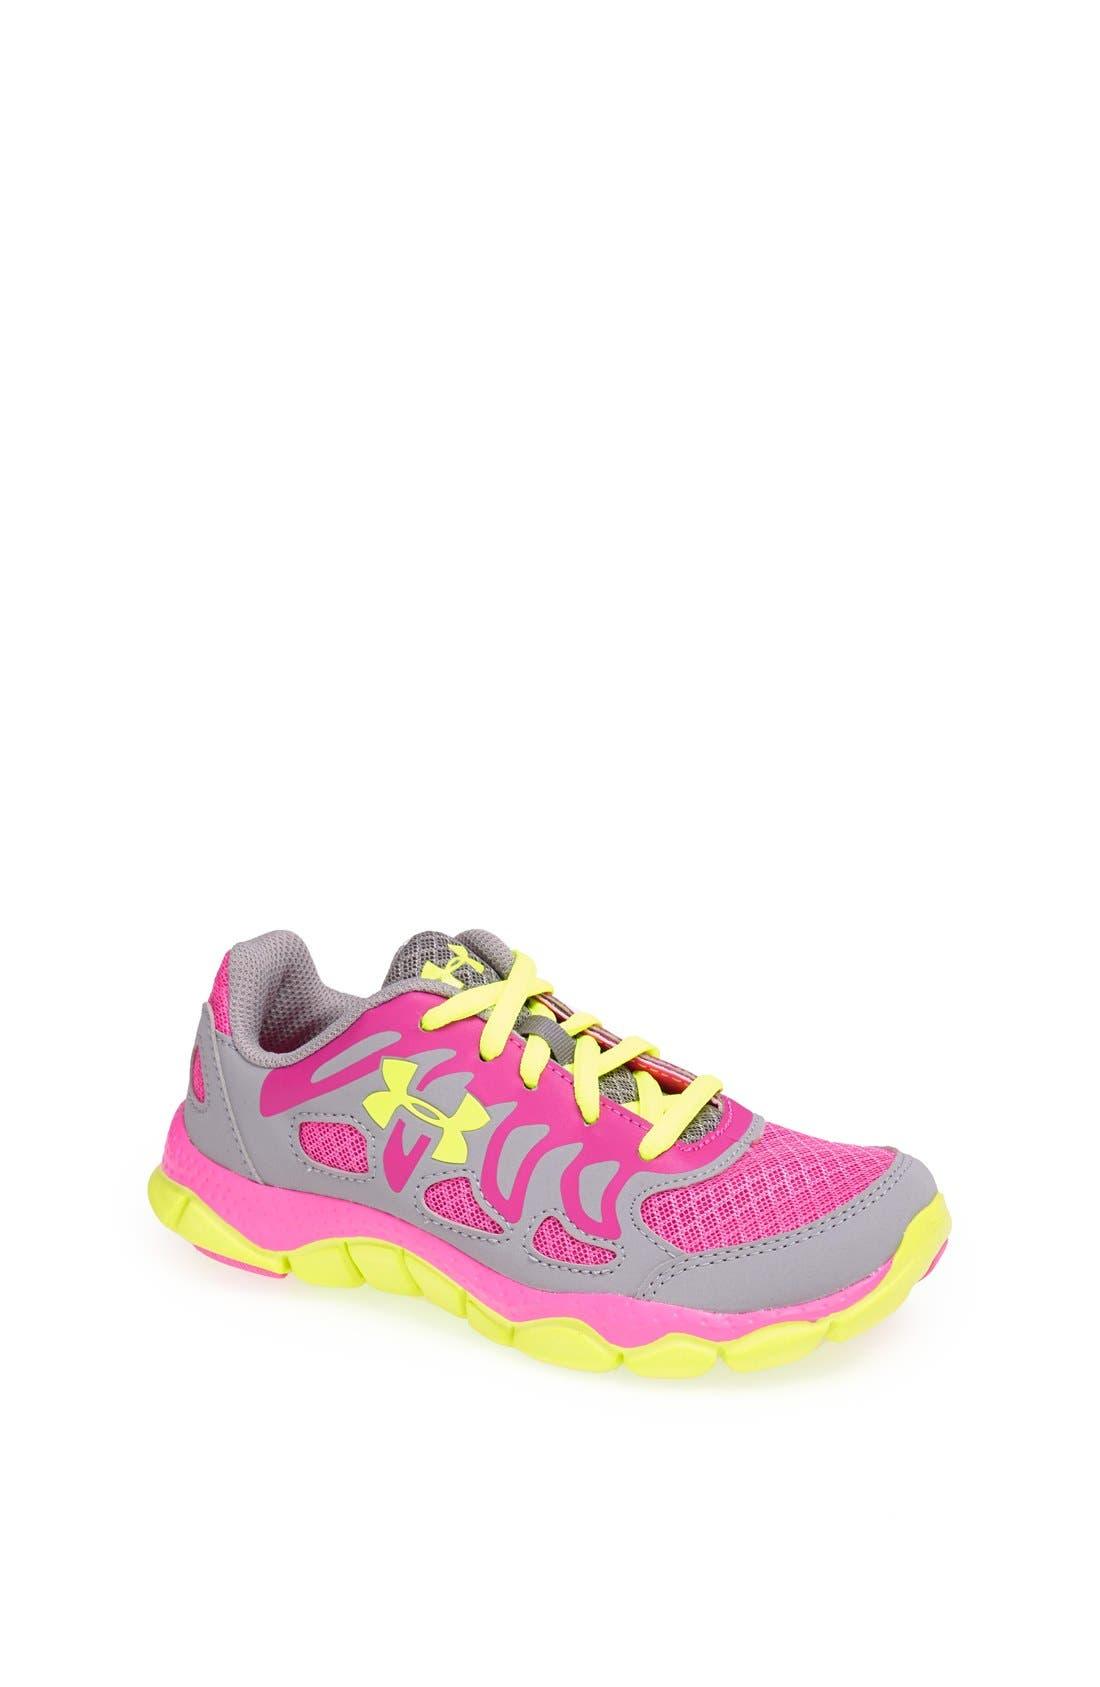 Main Image - Under Armour 'Engage' Running Shoe (Toddler & Little Kid)